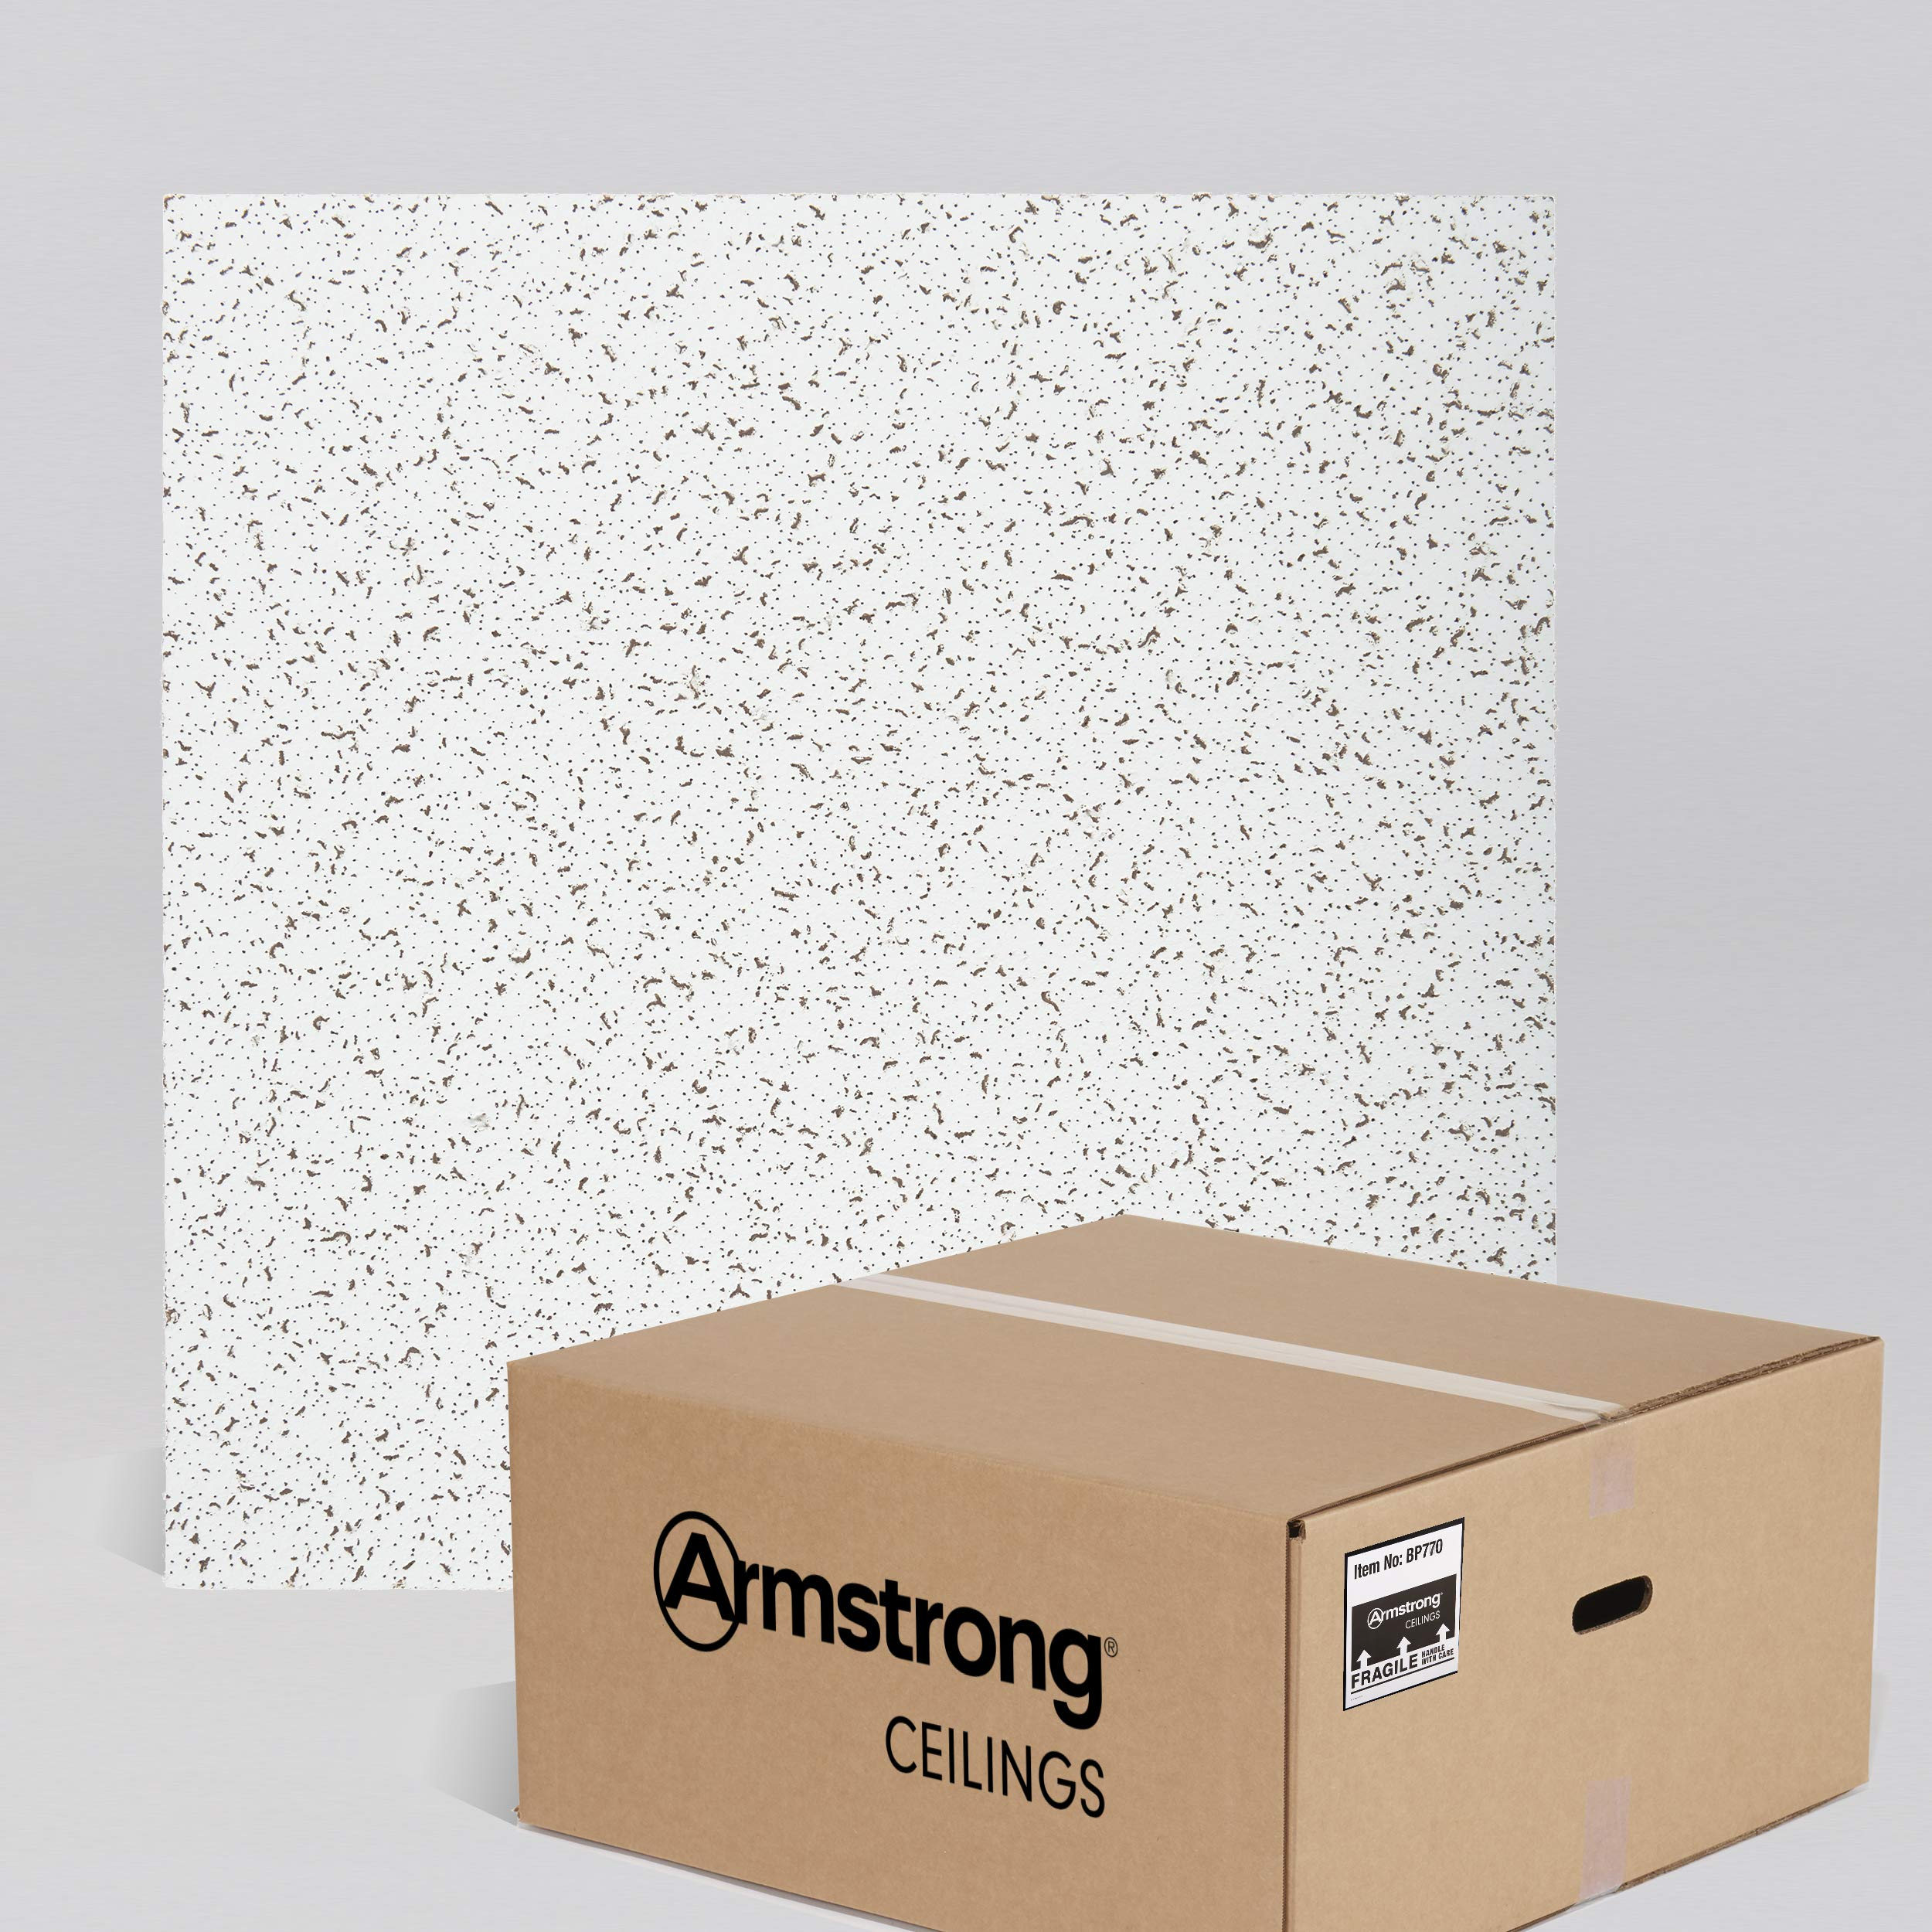 Armstrong Ceiling Tiles; 2x2 Ceiling Tiles - Acoustic Ceilings for Suspended Ceiling Grid; Drop Ceiling Tiles Direct from the Manufacturer; CORTEGA Item 770 – 16 pcs White Lay-in by Armstrong (Image #1)